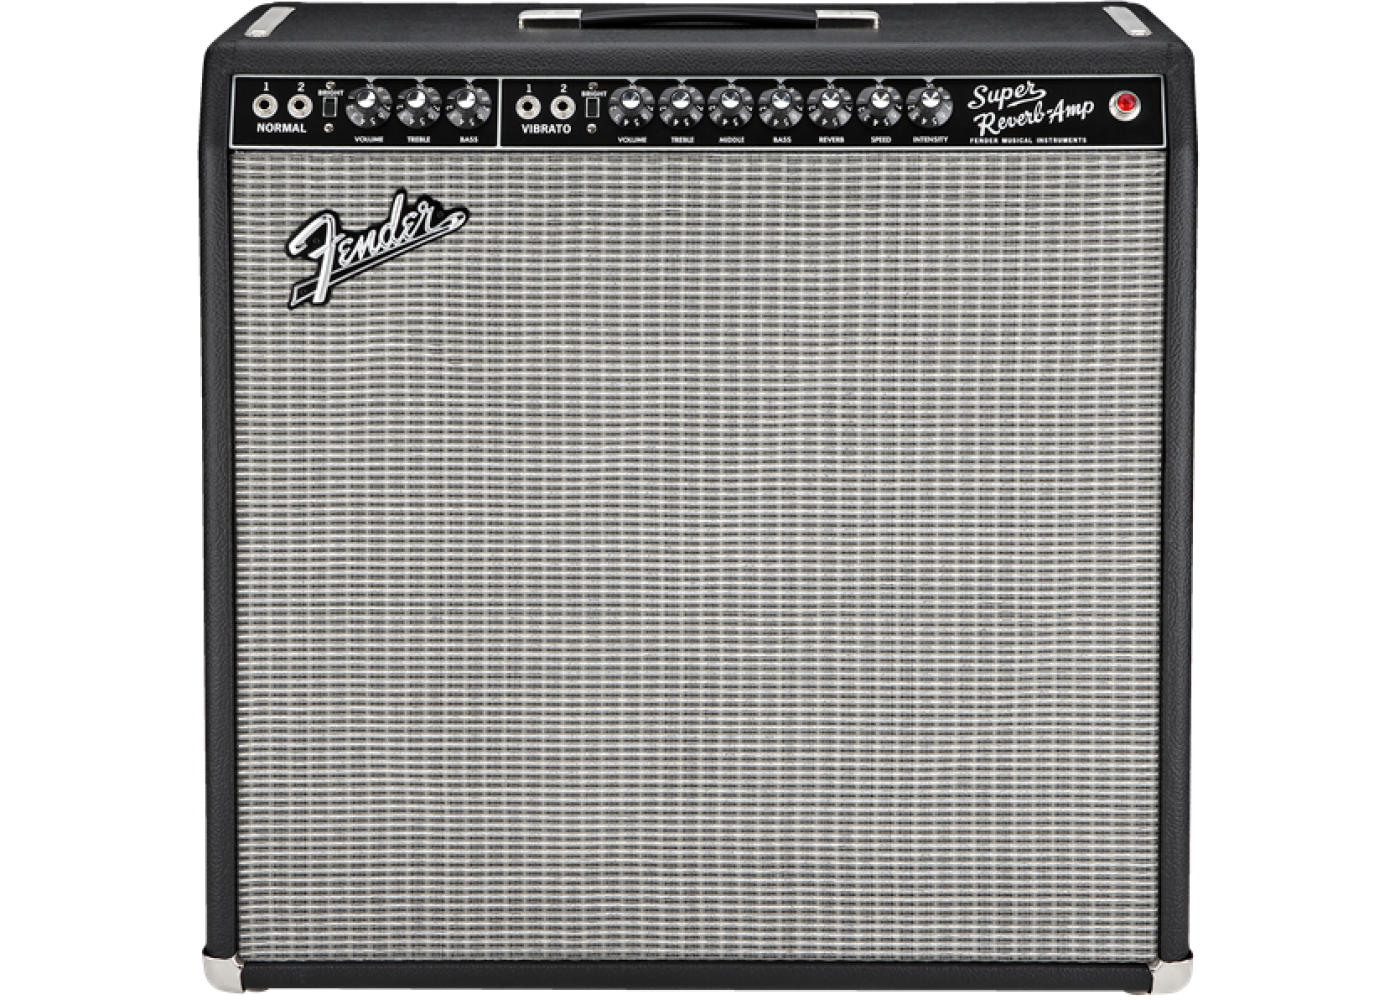 fender 39 65 super reverb 45 watt 4x10 electric guitar tube amplifier demo. Black Bedroom Furniture Sets. Home Design Ideas